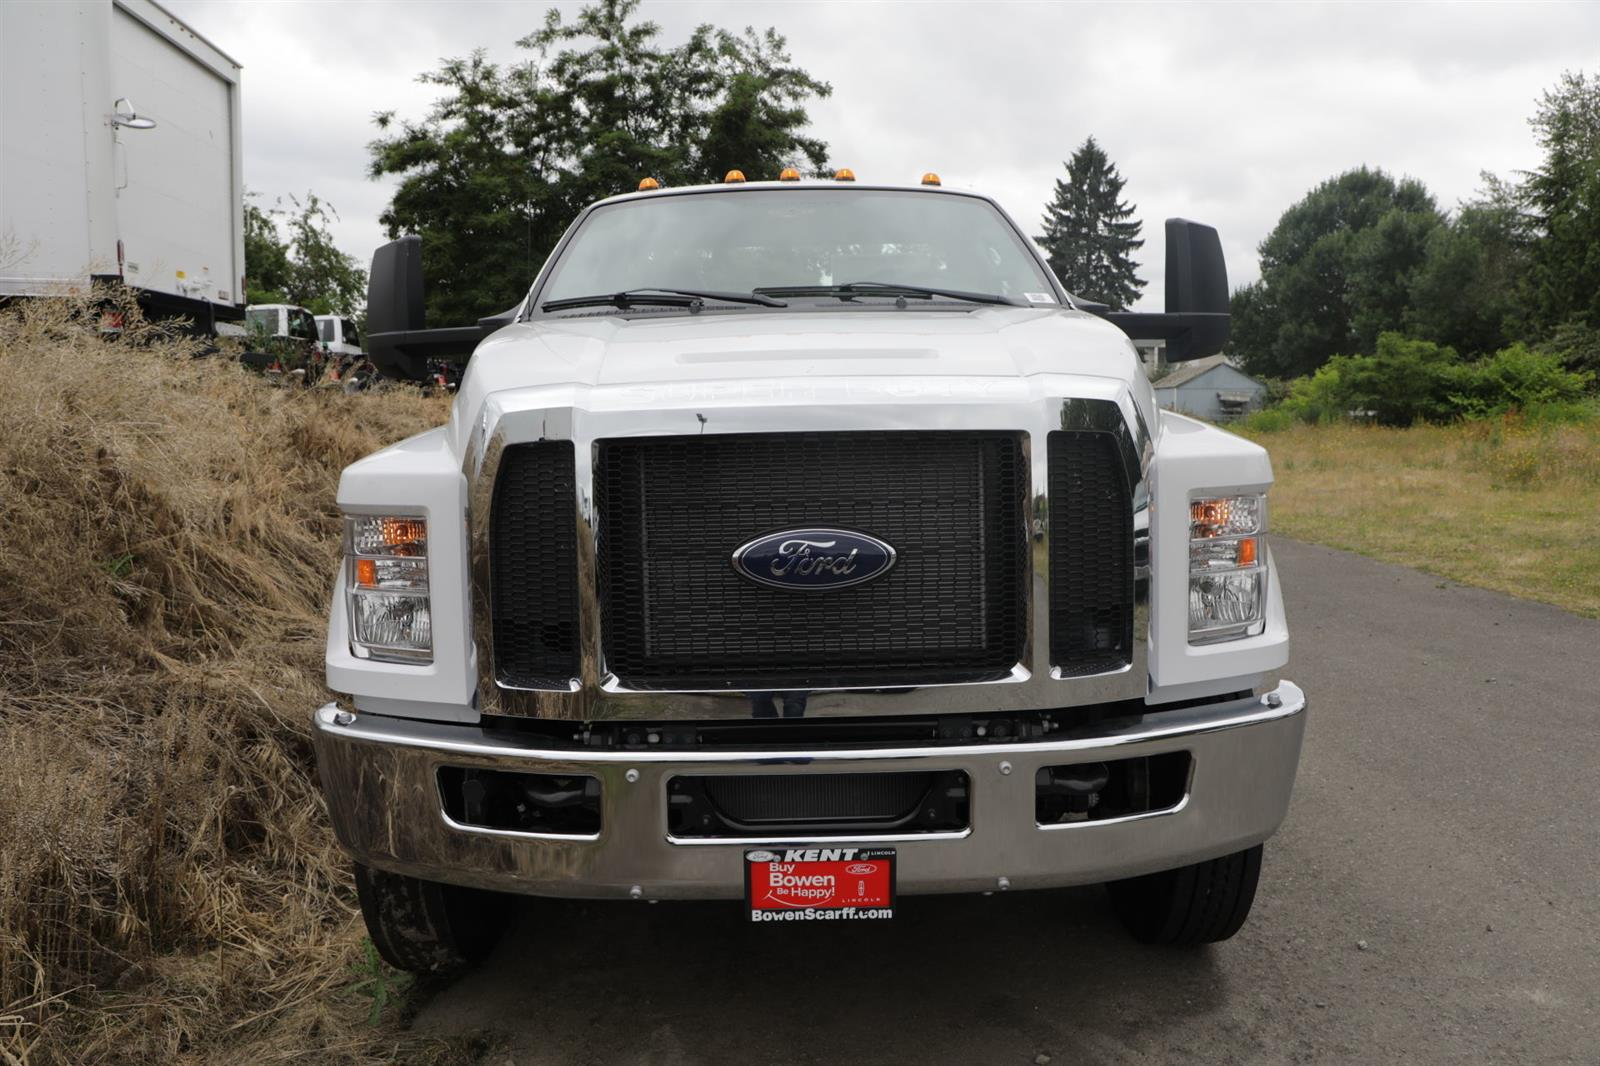 2021 Ford F-650 Regular Cab DRW 4x2, Cab Chassis #E9342 - photo 3